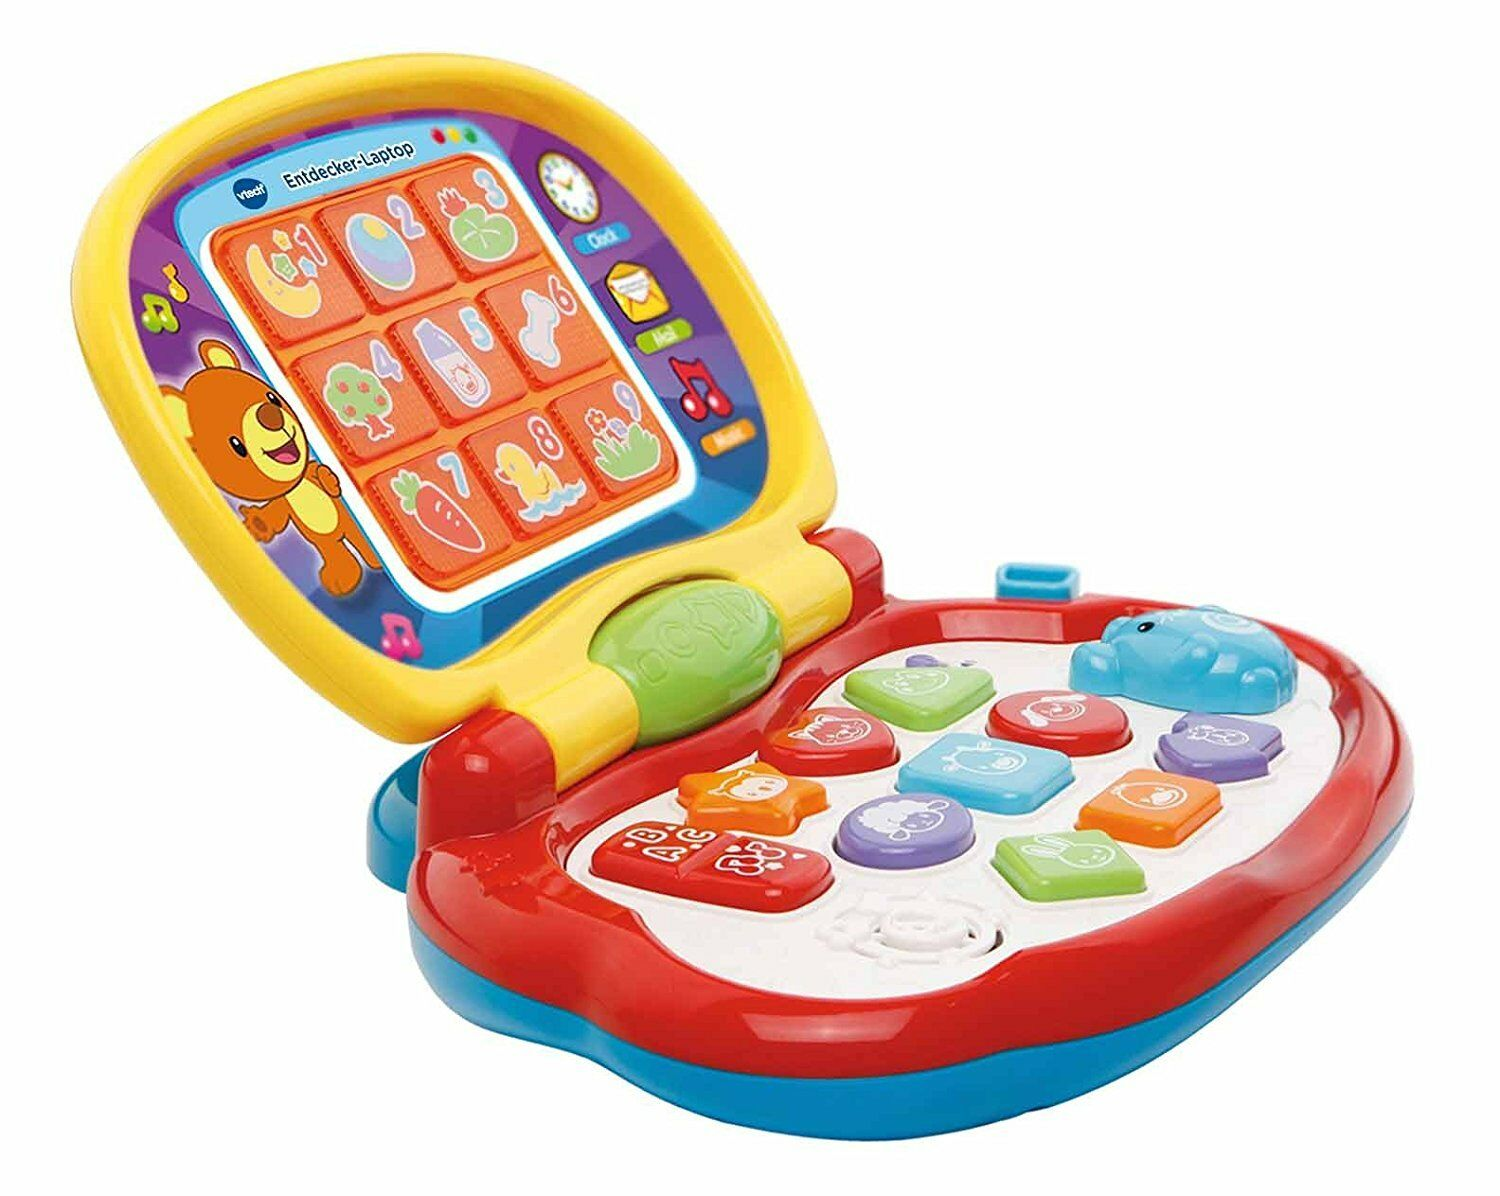 vtech baby entdecker laptop lernen spielen spa haben original kinder spielzeug eur 23 52. Black Bedroom Furniture Sets. Home Design Ideas